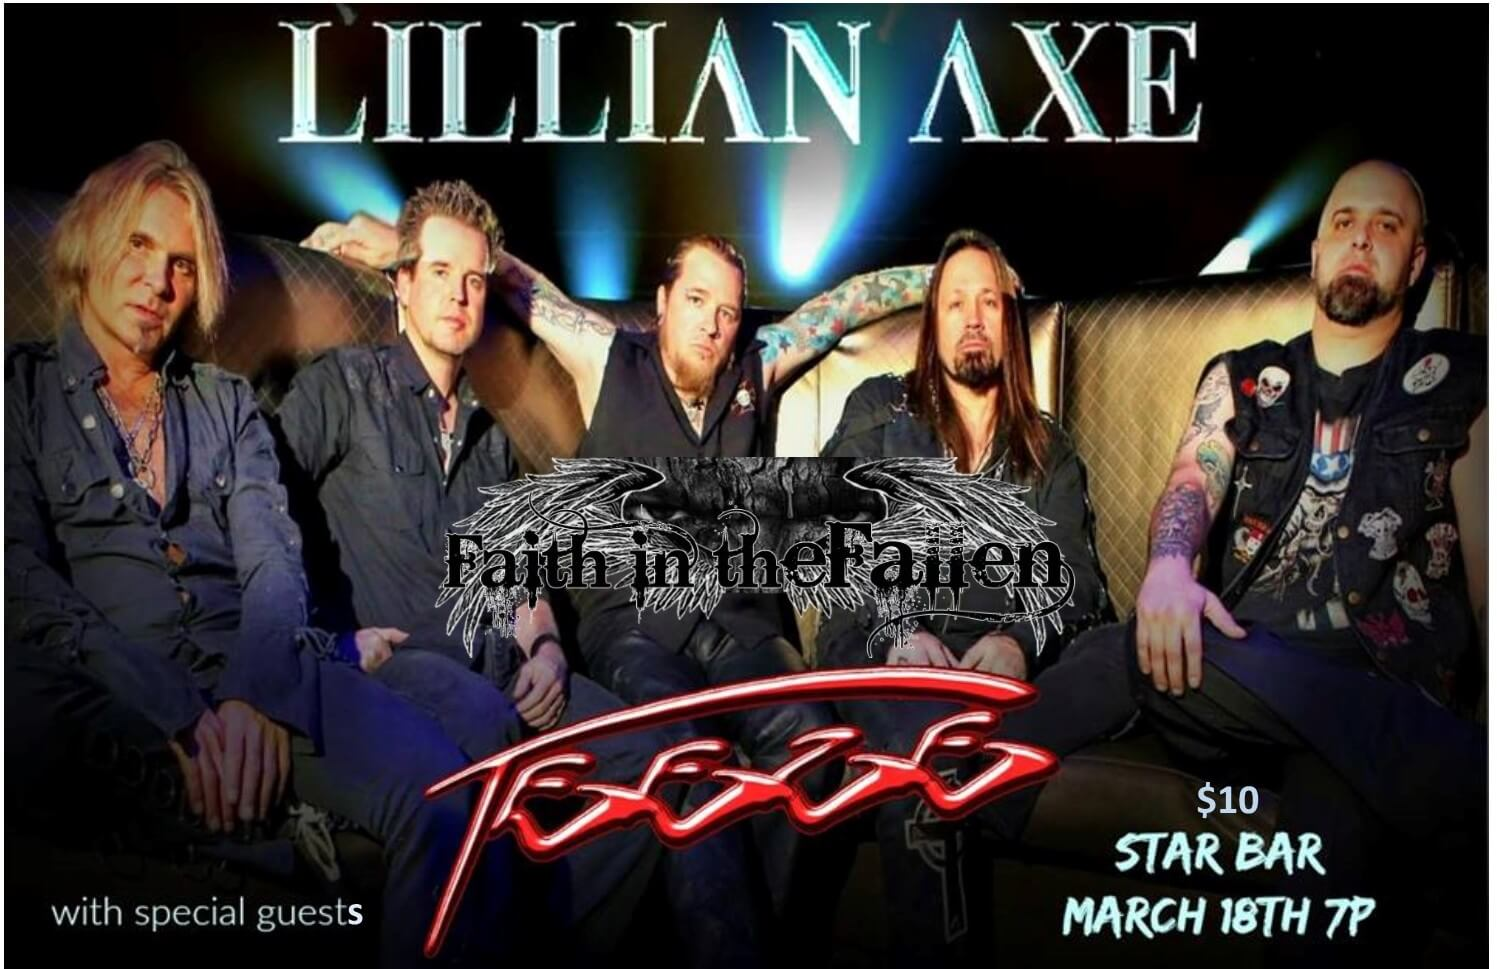 March 18 – Faith in the Fallen Support Lillian Axe w/ Teeze.